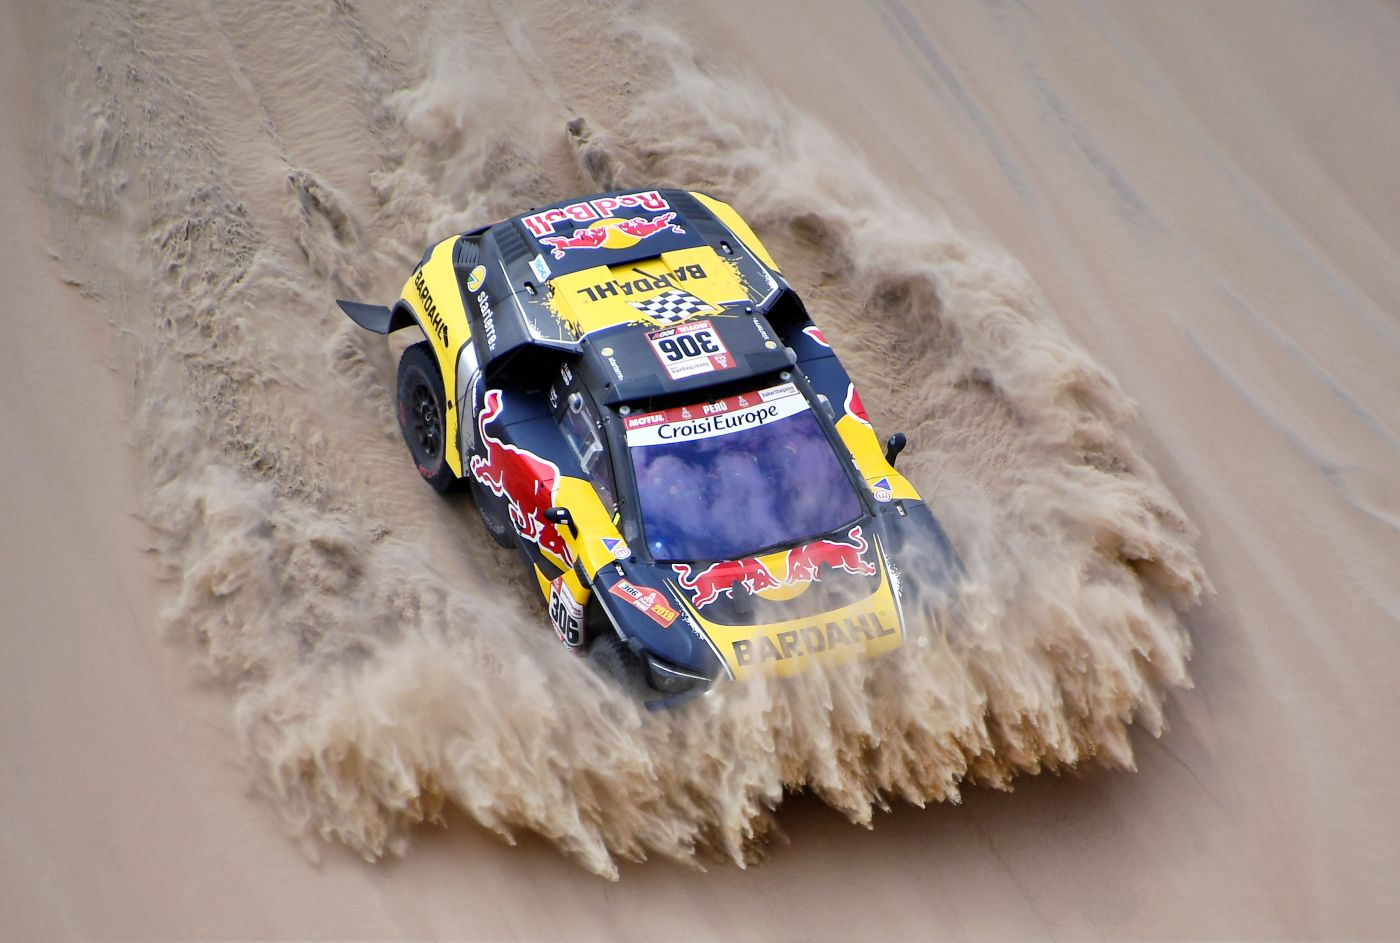 -- TOPSHOT - Peugeot's French driver Sebastien Loeb and co-driver Daniel Elena of Monaco compete during Stage 1 of the Dakar 2019 between Lima and Pisco, Peru, on January 7, 2019.  Toyota's driver Nasser Al-Attiyah of Qatar and his co-driver Mathieu Baumel of France  won the stage. / AFP / FRANCK FIFE